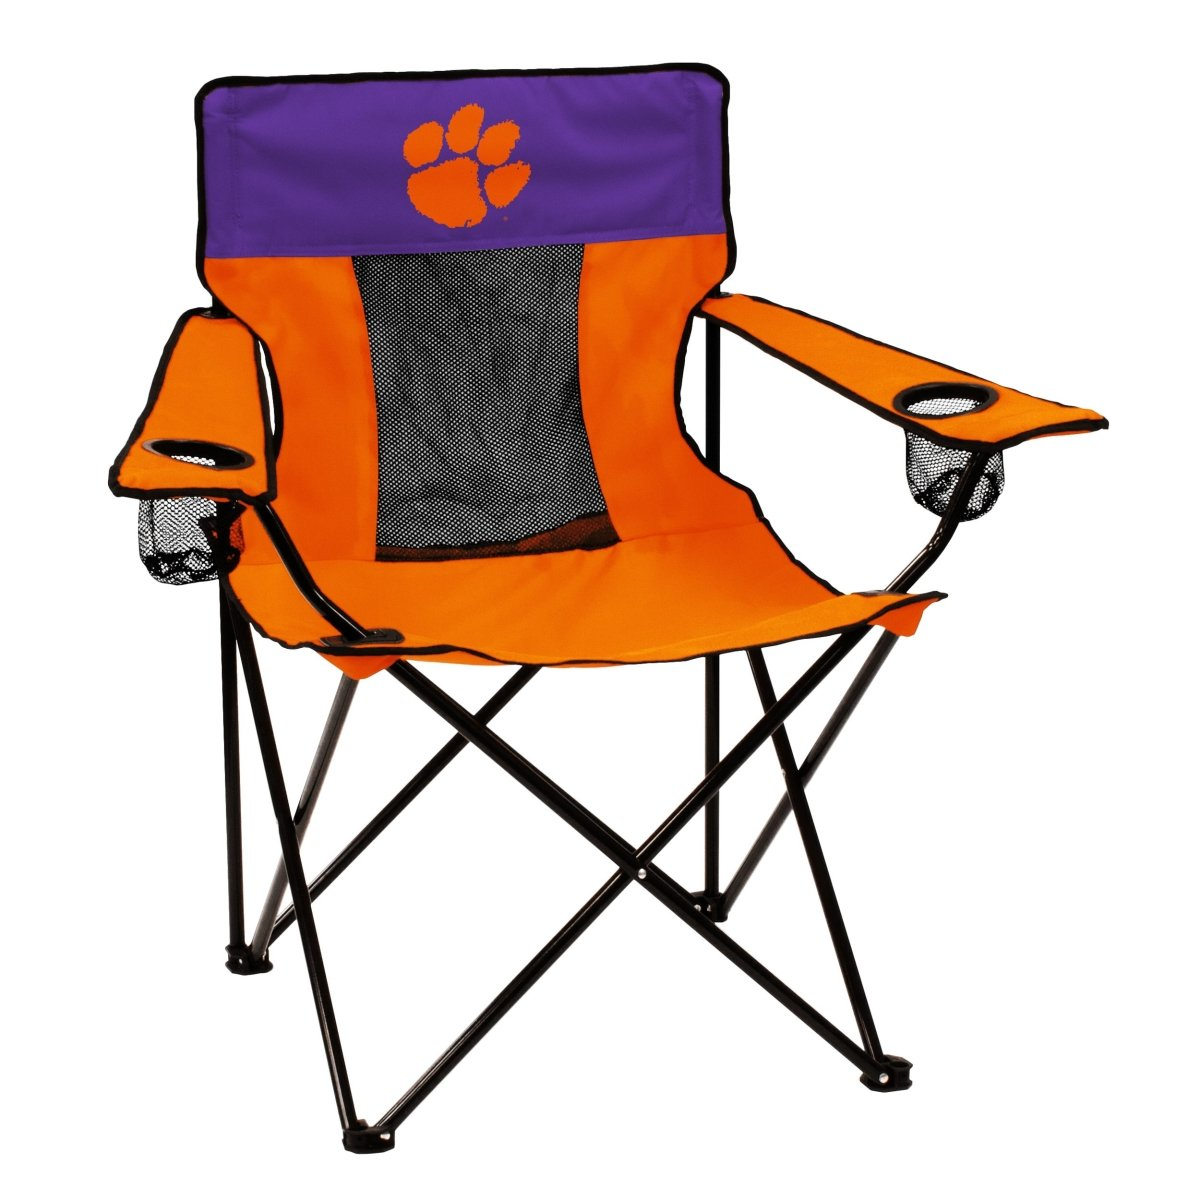 Elite Folding Chair With Paw - Mr. Knickerbocker